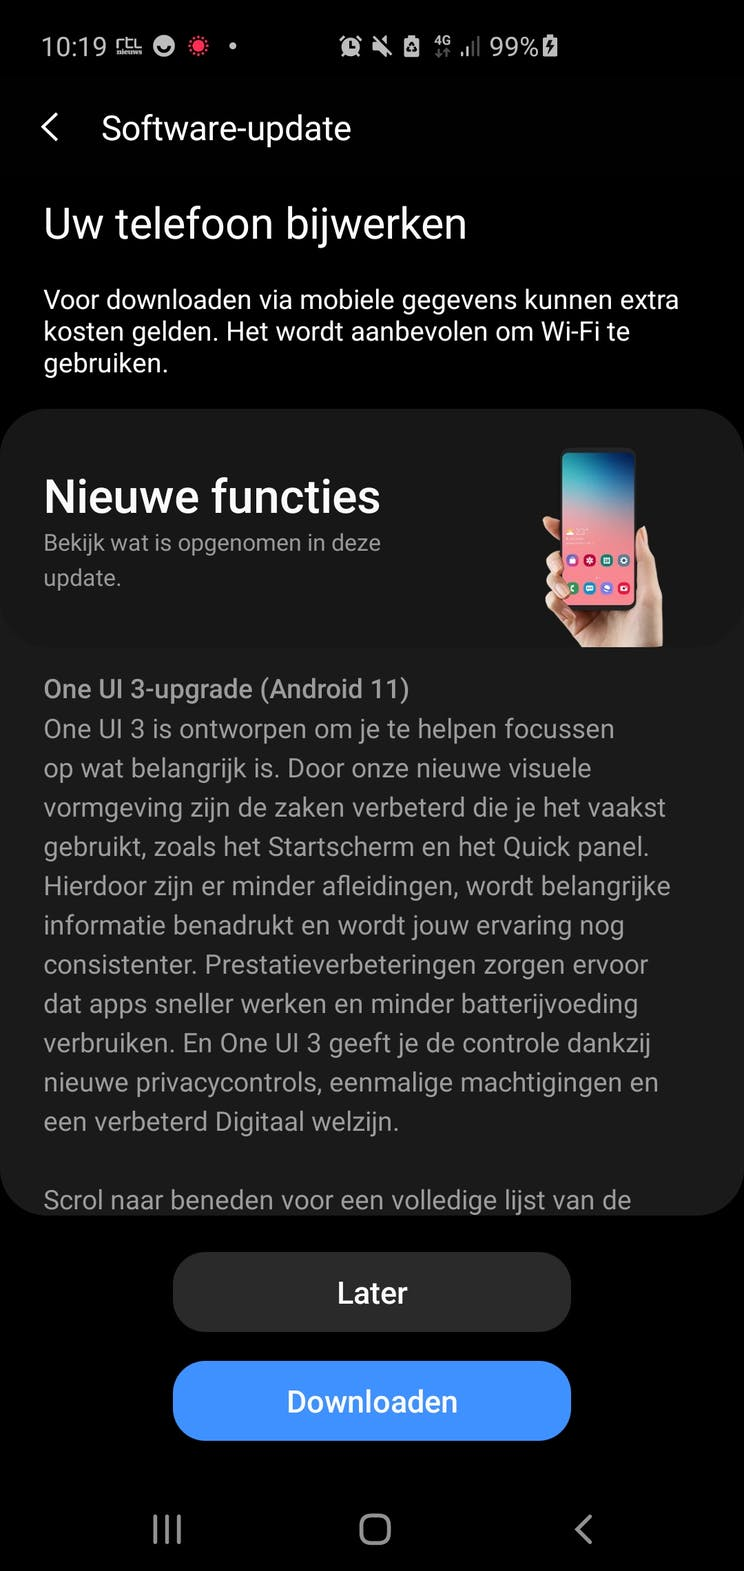 The Samsung Galaxy S10 series receives Android 11 in the Netherlands